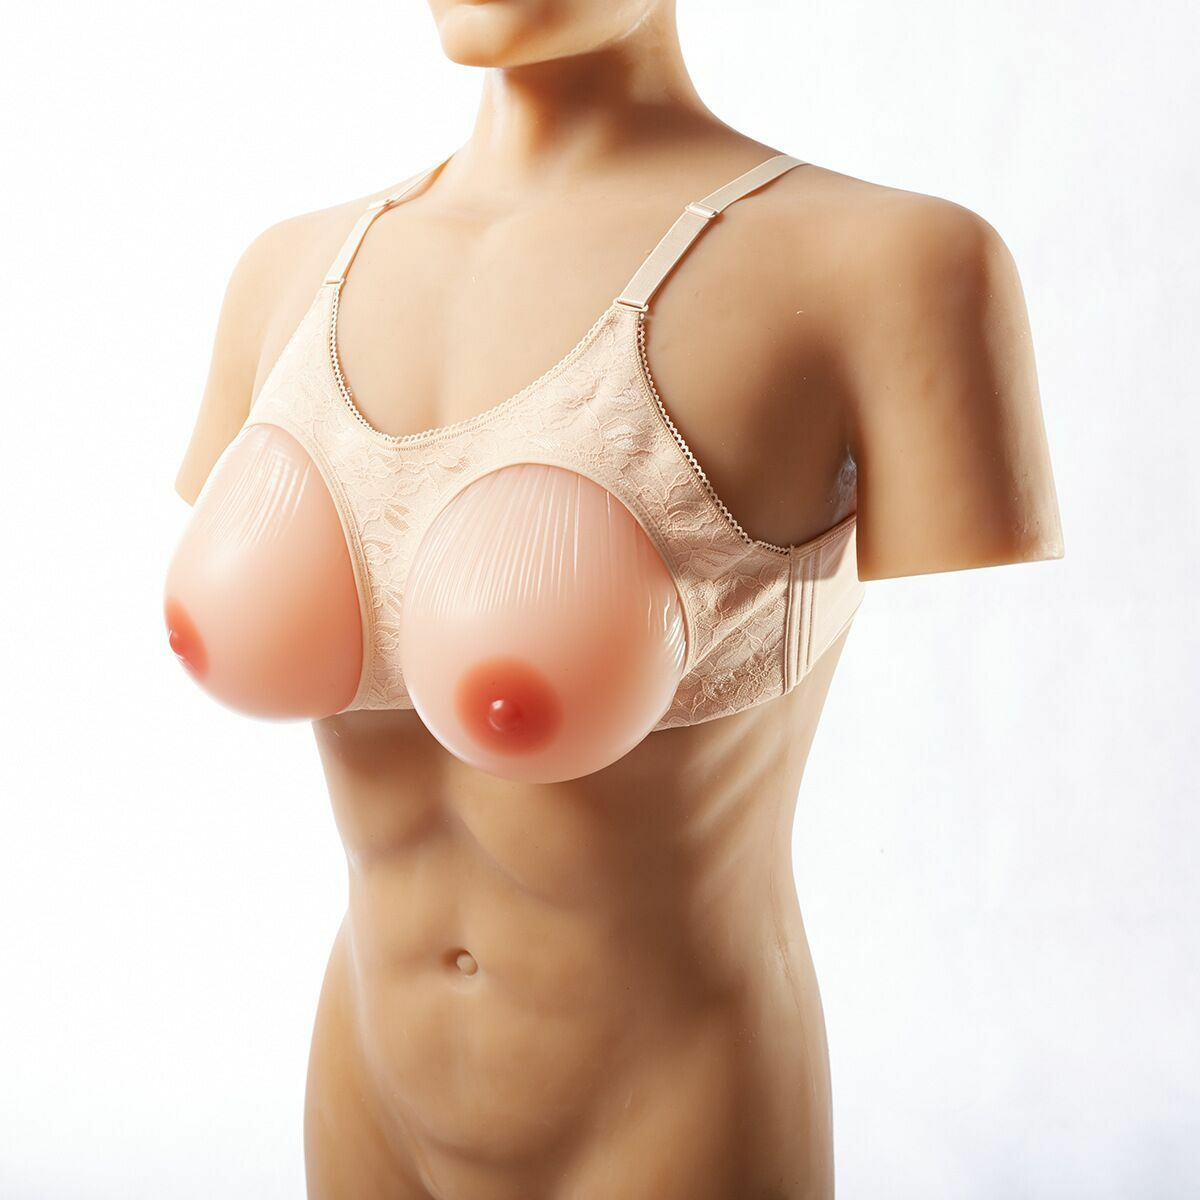 1000g pair Large Breast Forms Silicone Breast Prosthesis Fake Breast with Bra